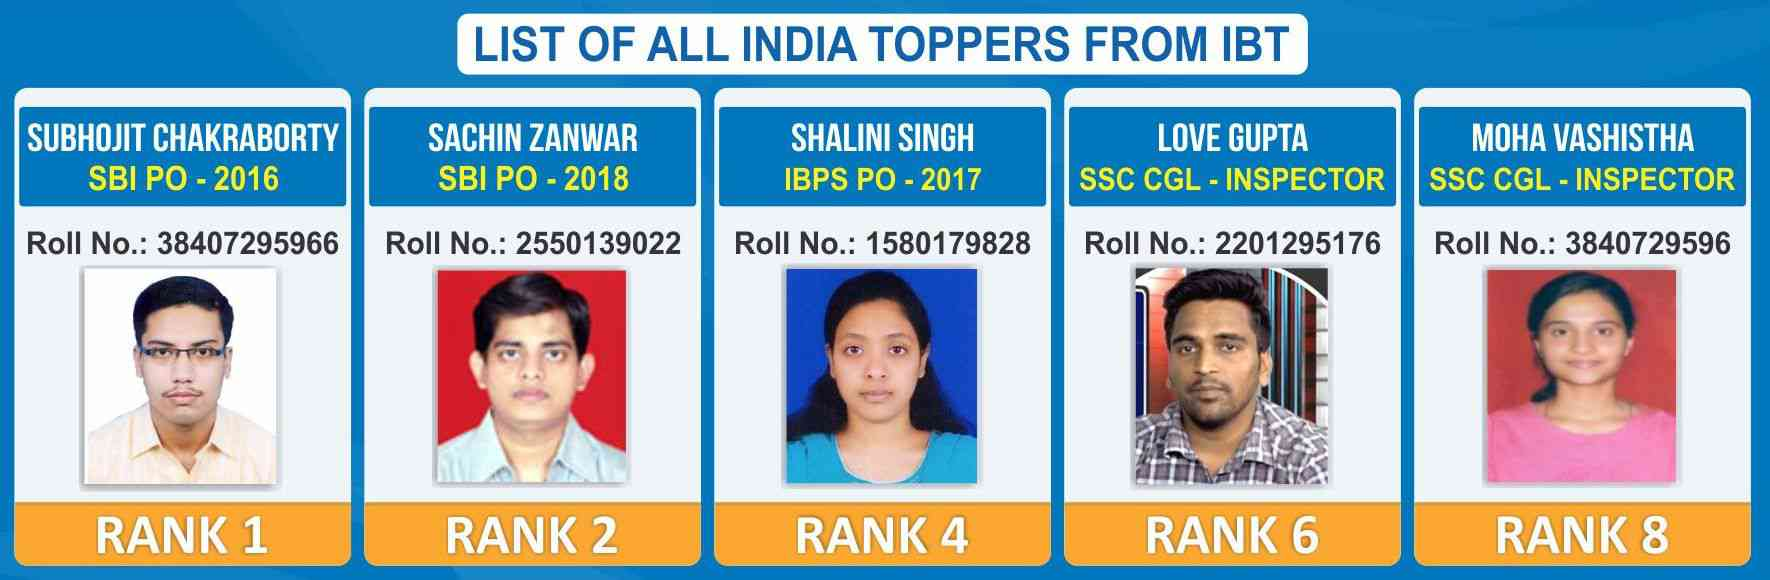 List of SSC toppers from IBT